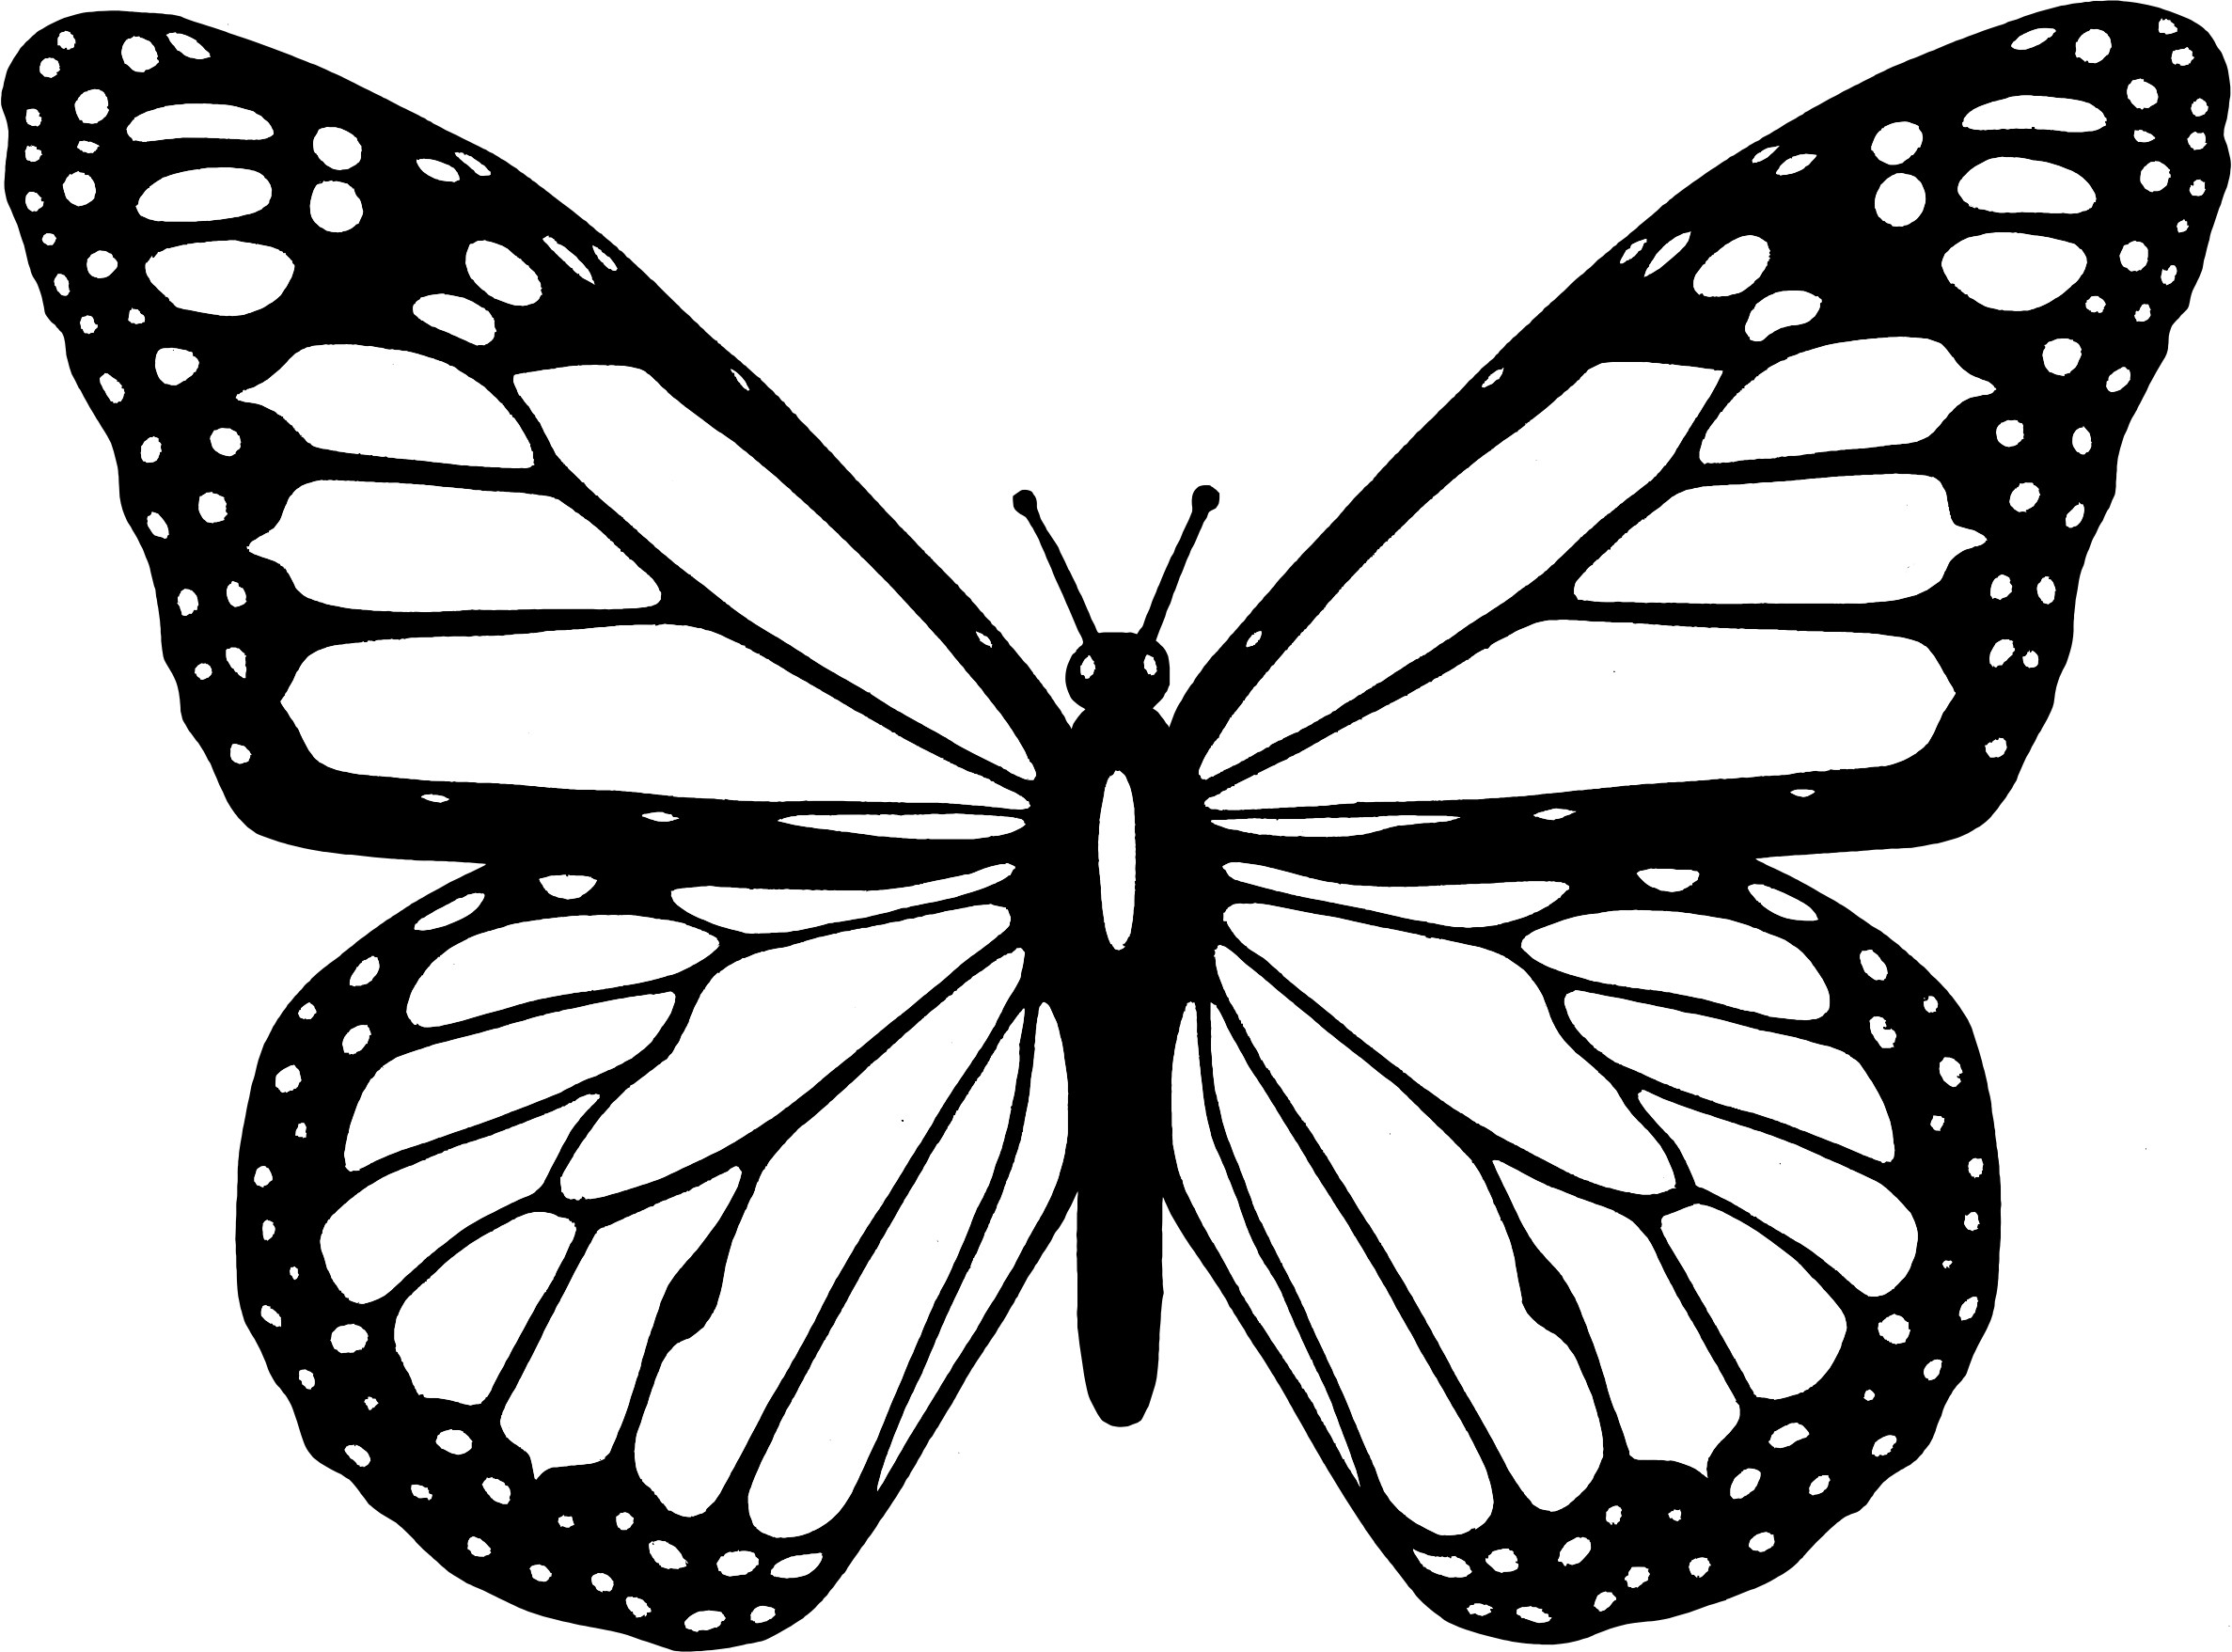 coloring images of butterfly butterfly coloring pages free download on clipartmag coloring images butterfly of